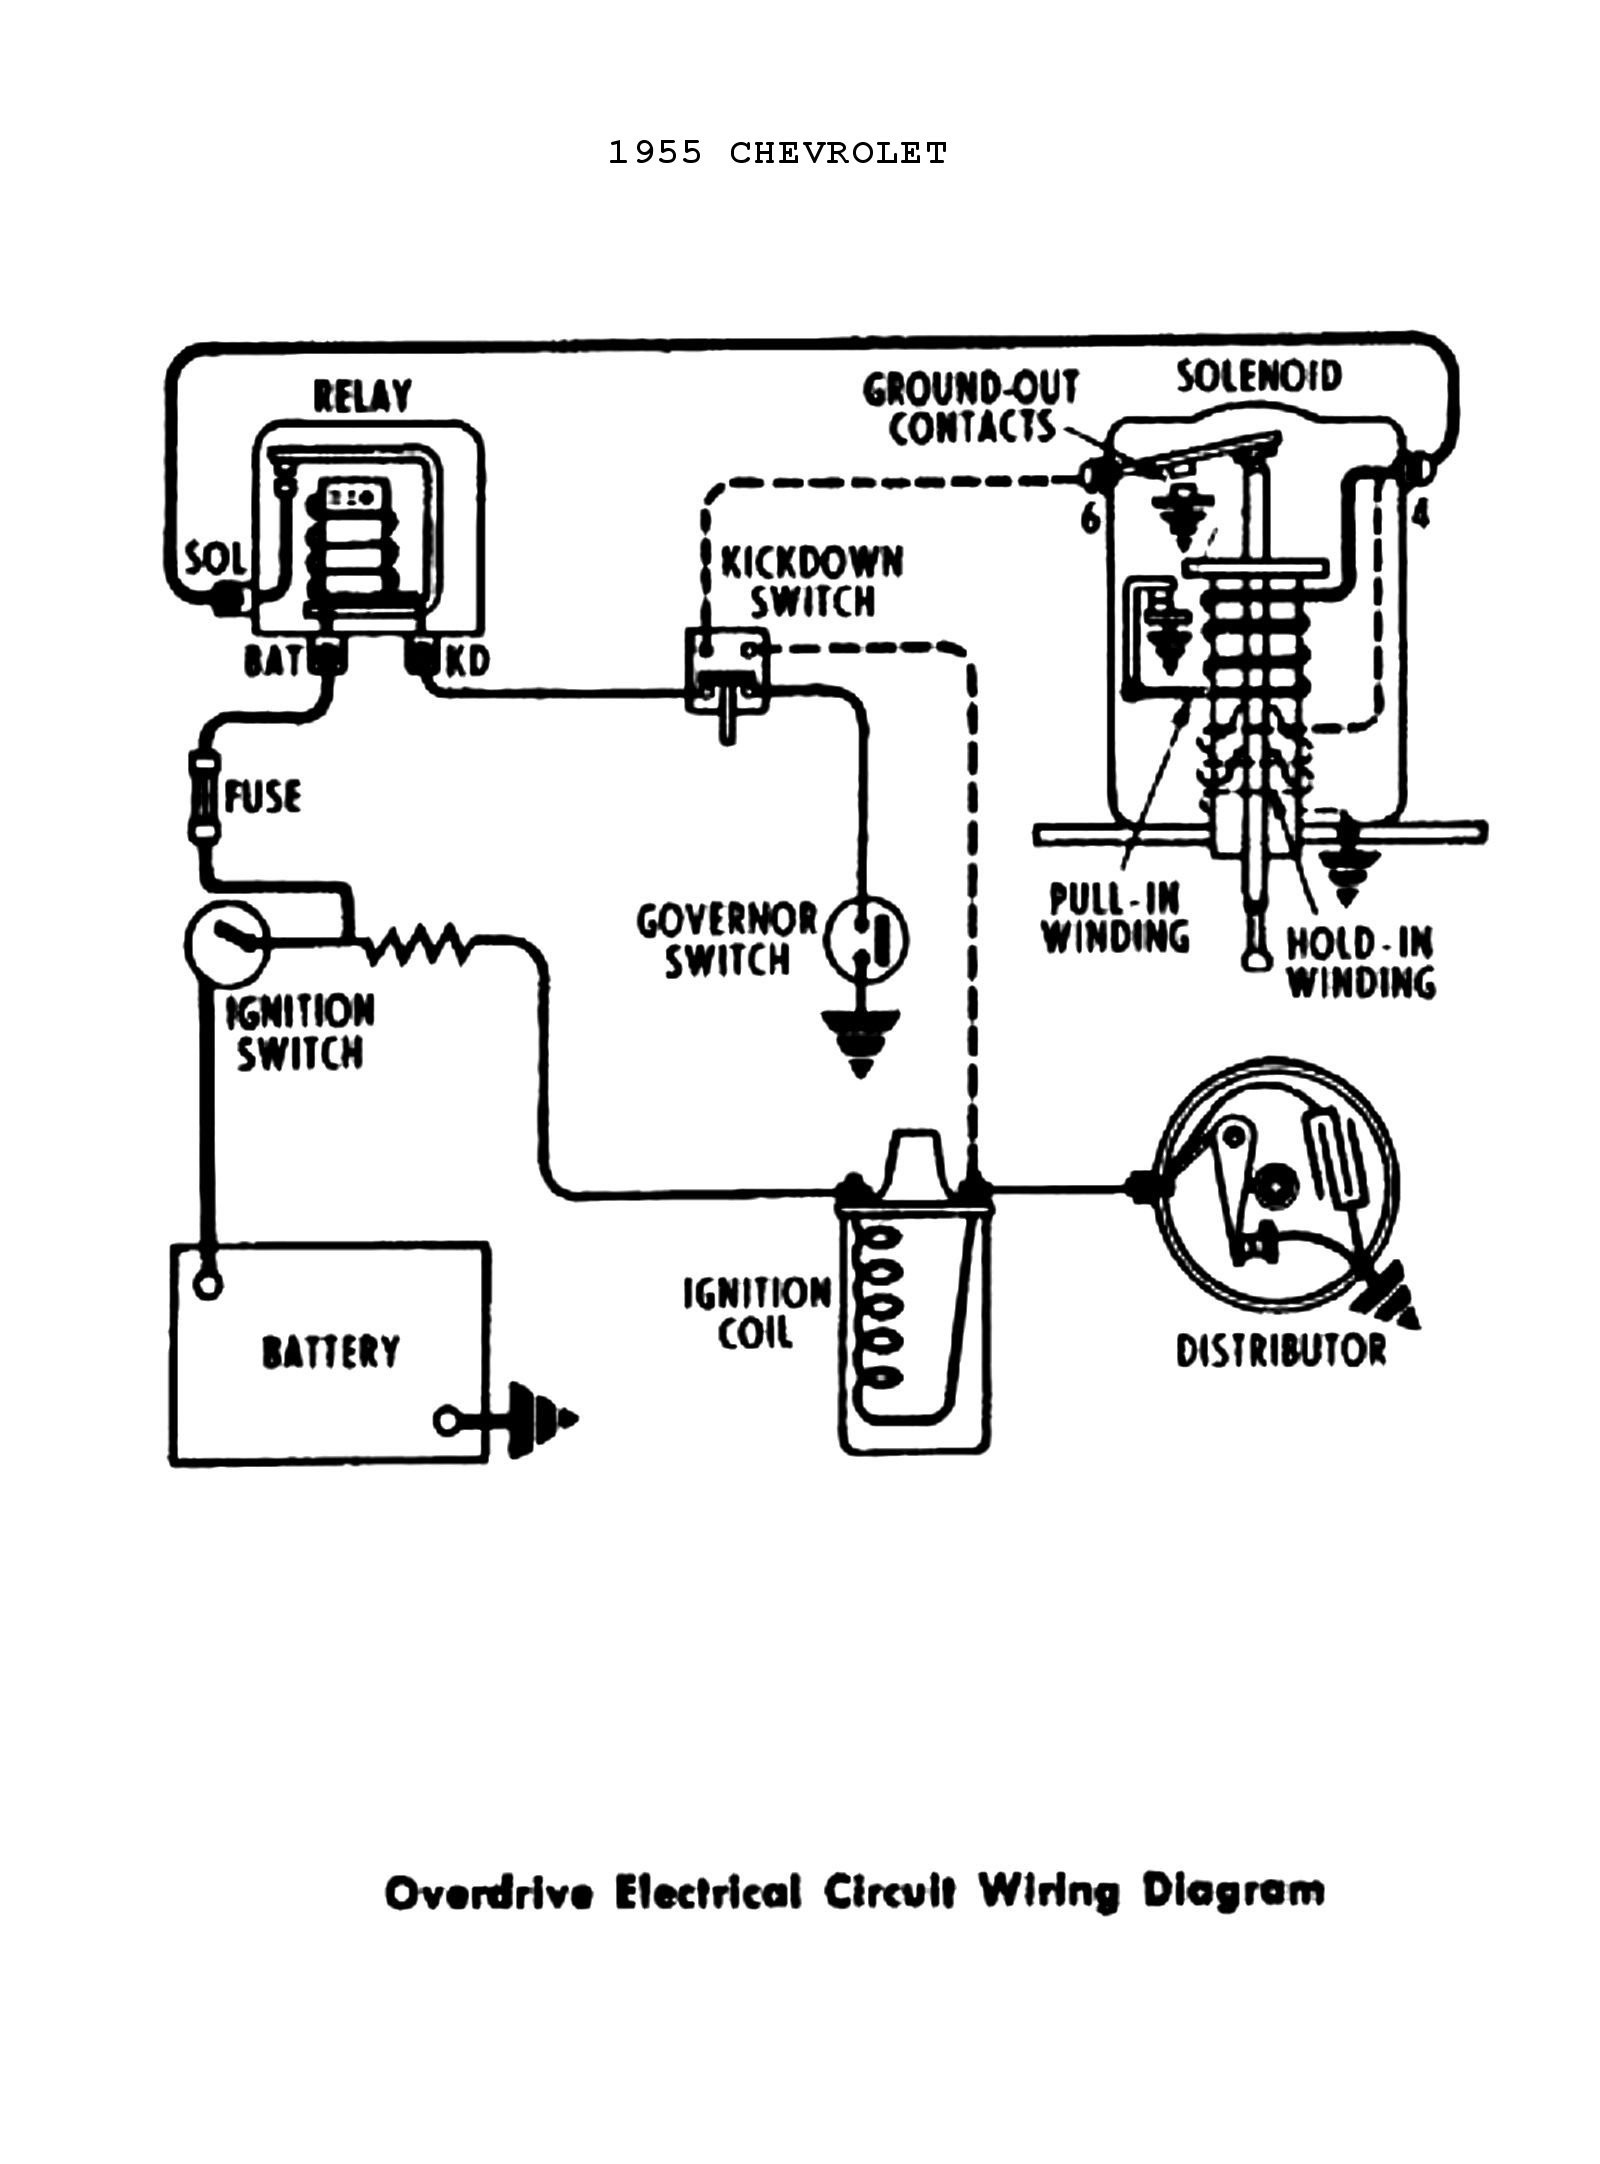 Mercury Outboard Ignition Switch Wiring Diagram Ignition Switch Wiring Diagram Wiring Diagram Of Mercury Outboard Ignition Switch Wiring Diagram